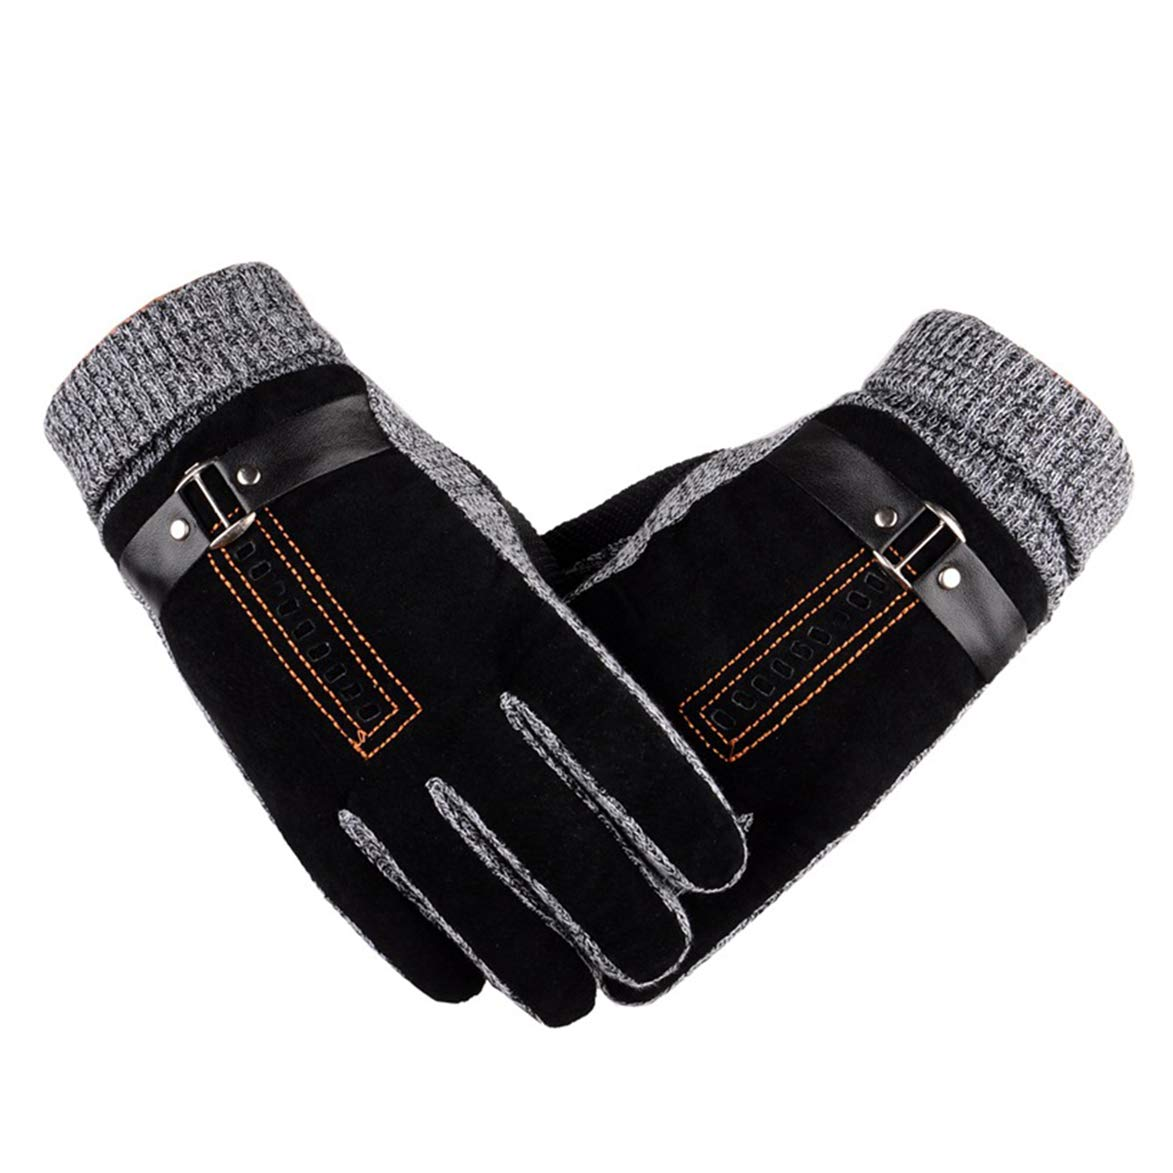 Eohak Windproof Pigskin Leather-Driving-Suede Gloves Mens Women Thermal Plush Lined Winter Gloves with Elasticated